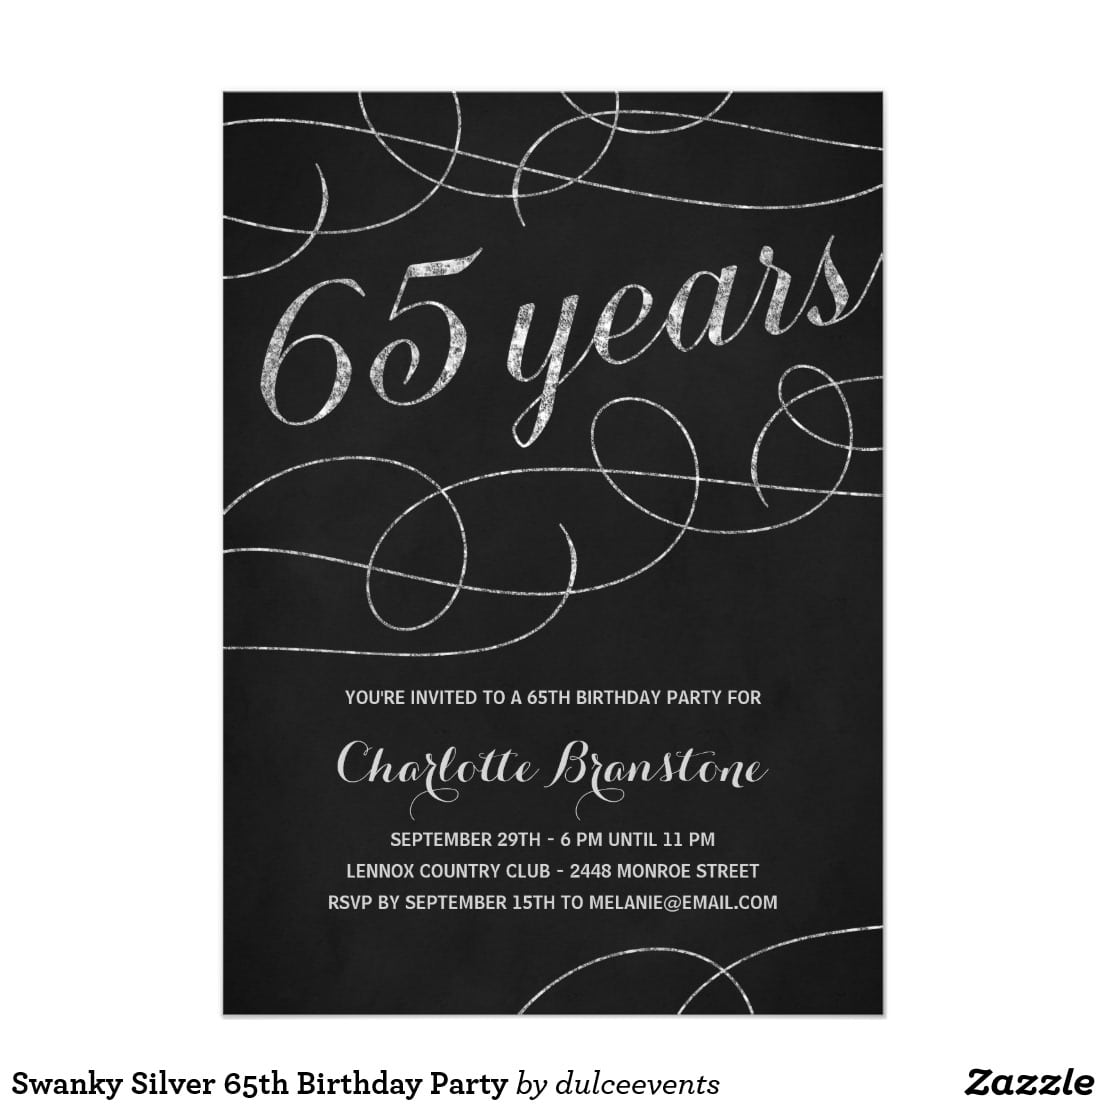 Swanky Silver 65th Birthday Party Card This Fancy, Stylish 65th